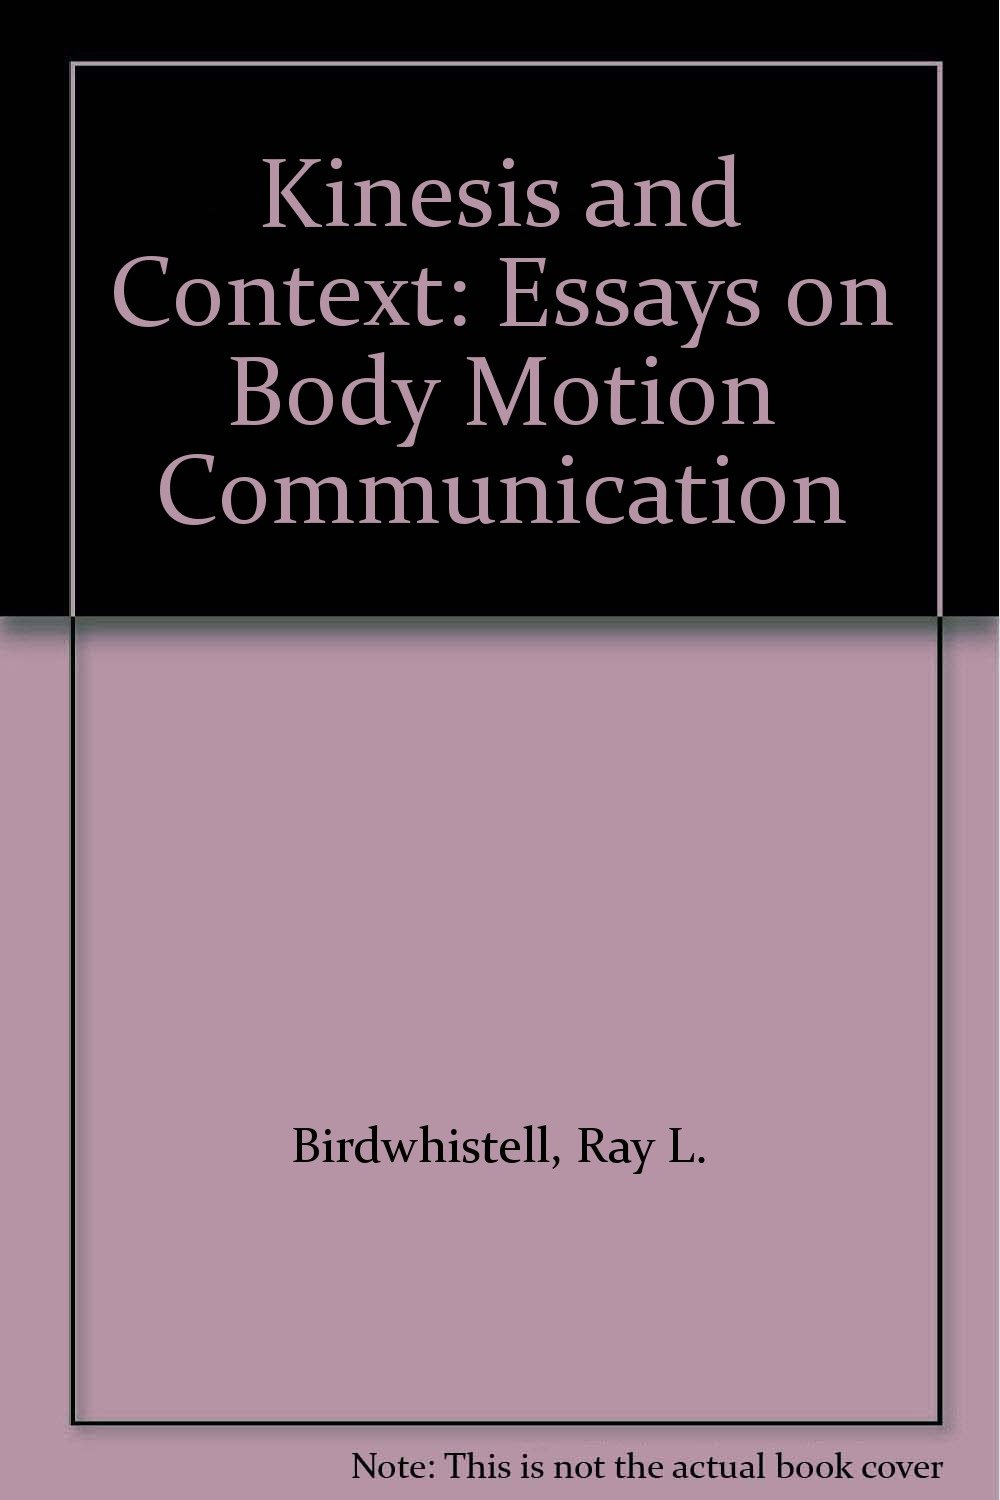 Essay On Business Ethics Kinesis And Context Essays On Body Motion Communication Ray L Ray L  Birdwhistell Birdwhistell Hal Siegel Cover Design   Amazoncom  English Essays Book also Research Proposal Essay Topics Kinesis And Context Essays On Body Motion Communication Ray L  Essays On Science And Technology